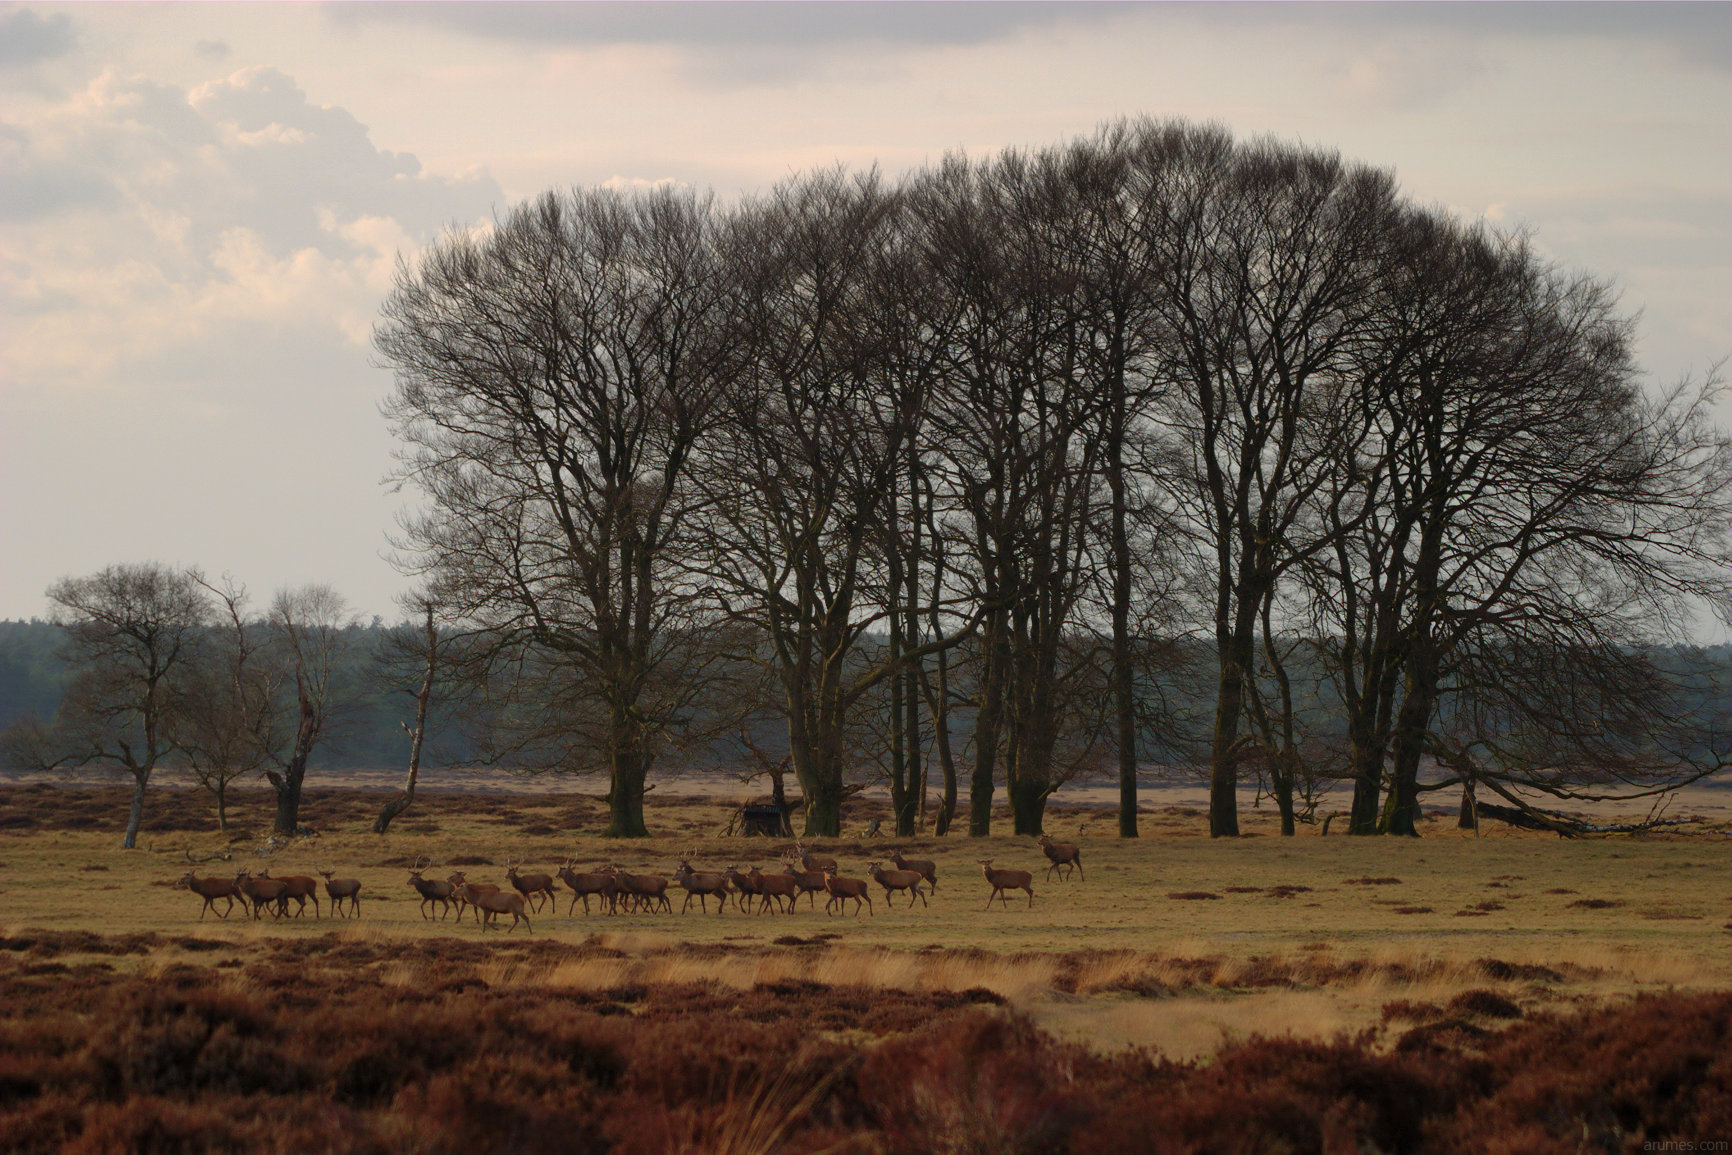 About 20 deer walking in foreground, large trees in back